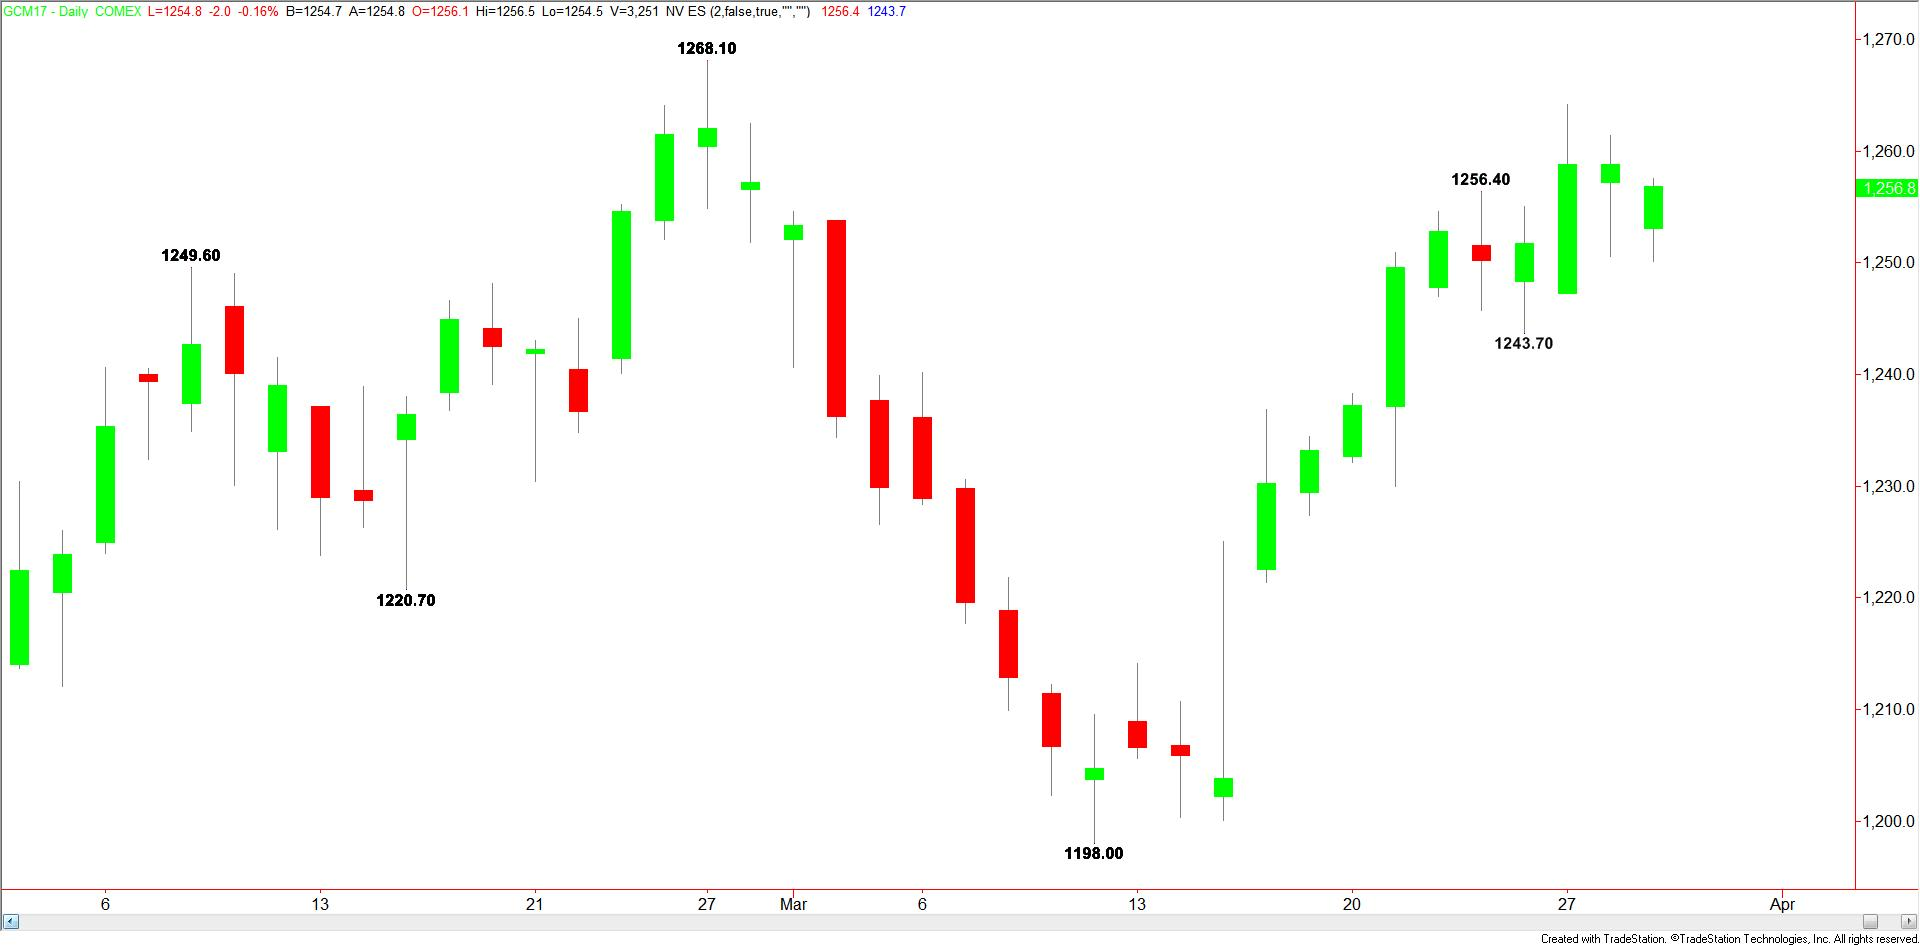 Daily Comex Gold